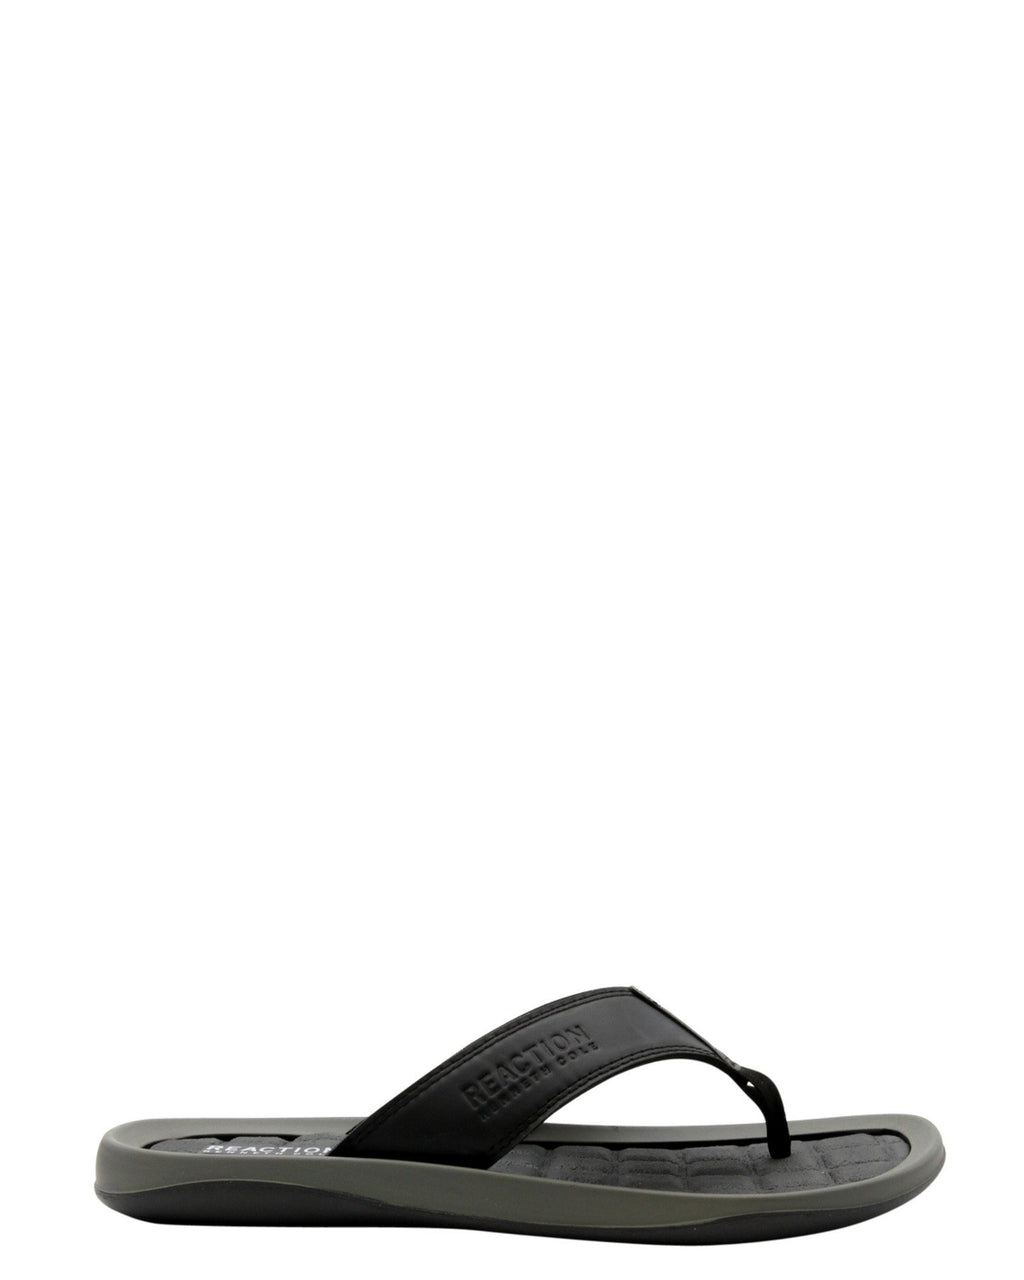 Men's Reaction Four Give T Strap Flip Flop